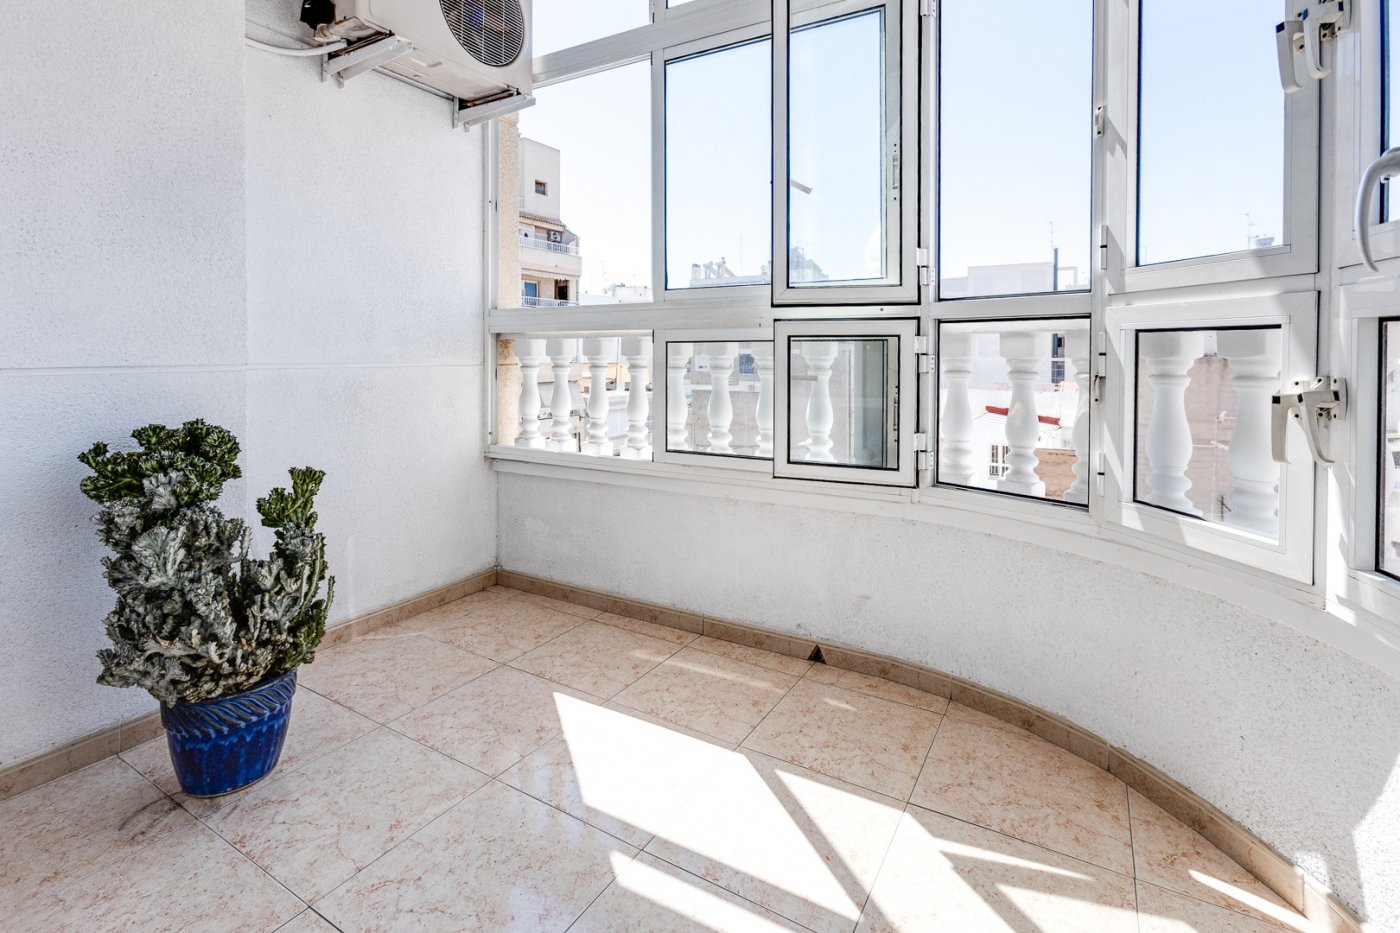 3 BEDROOM  + 2 BATHROOM APARTMENT + TERRACE IN THE CENTER OF TORREVIEJA